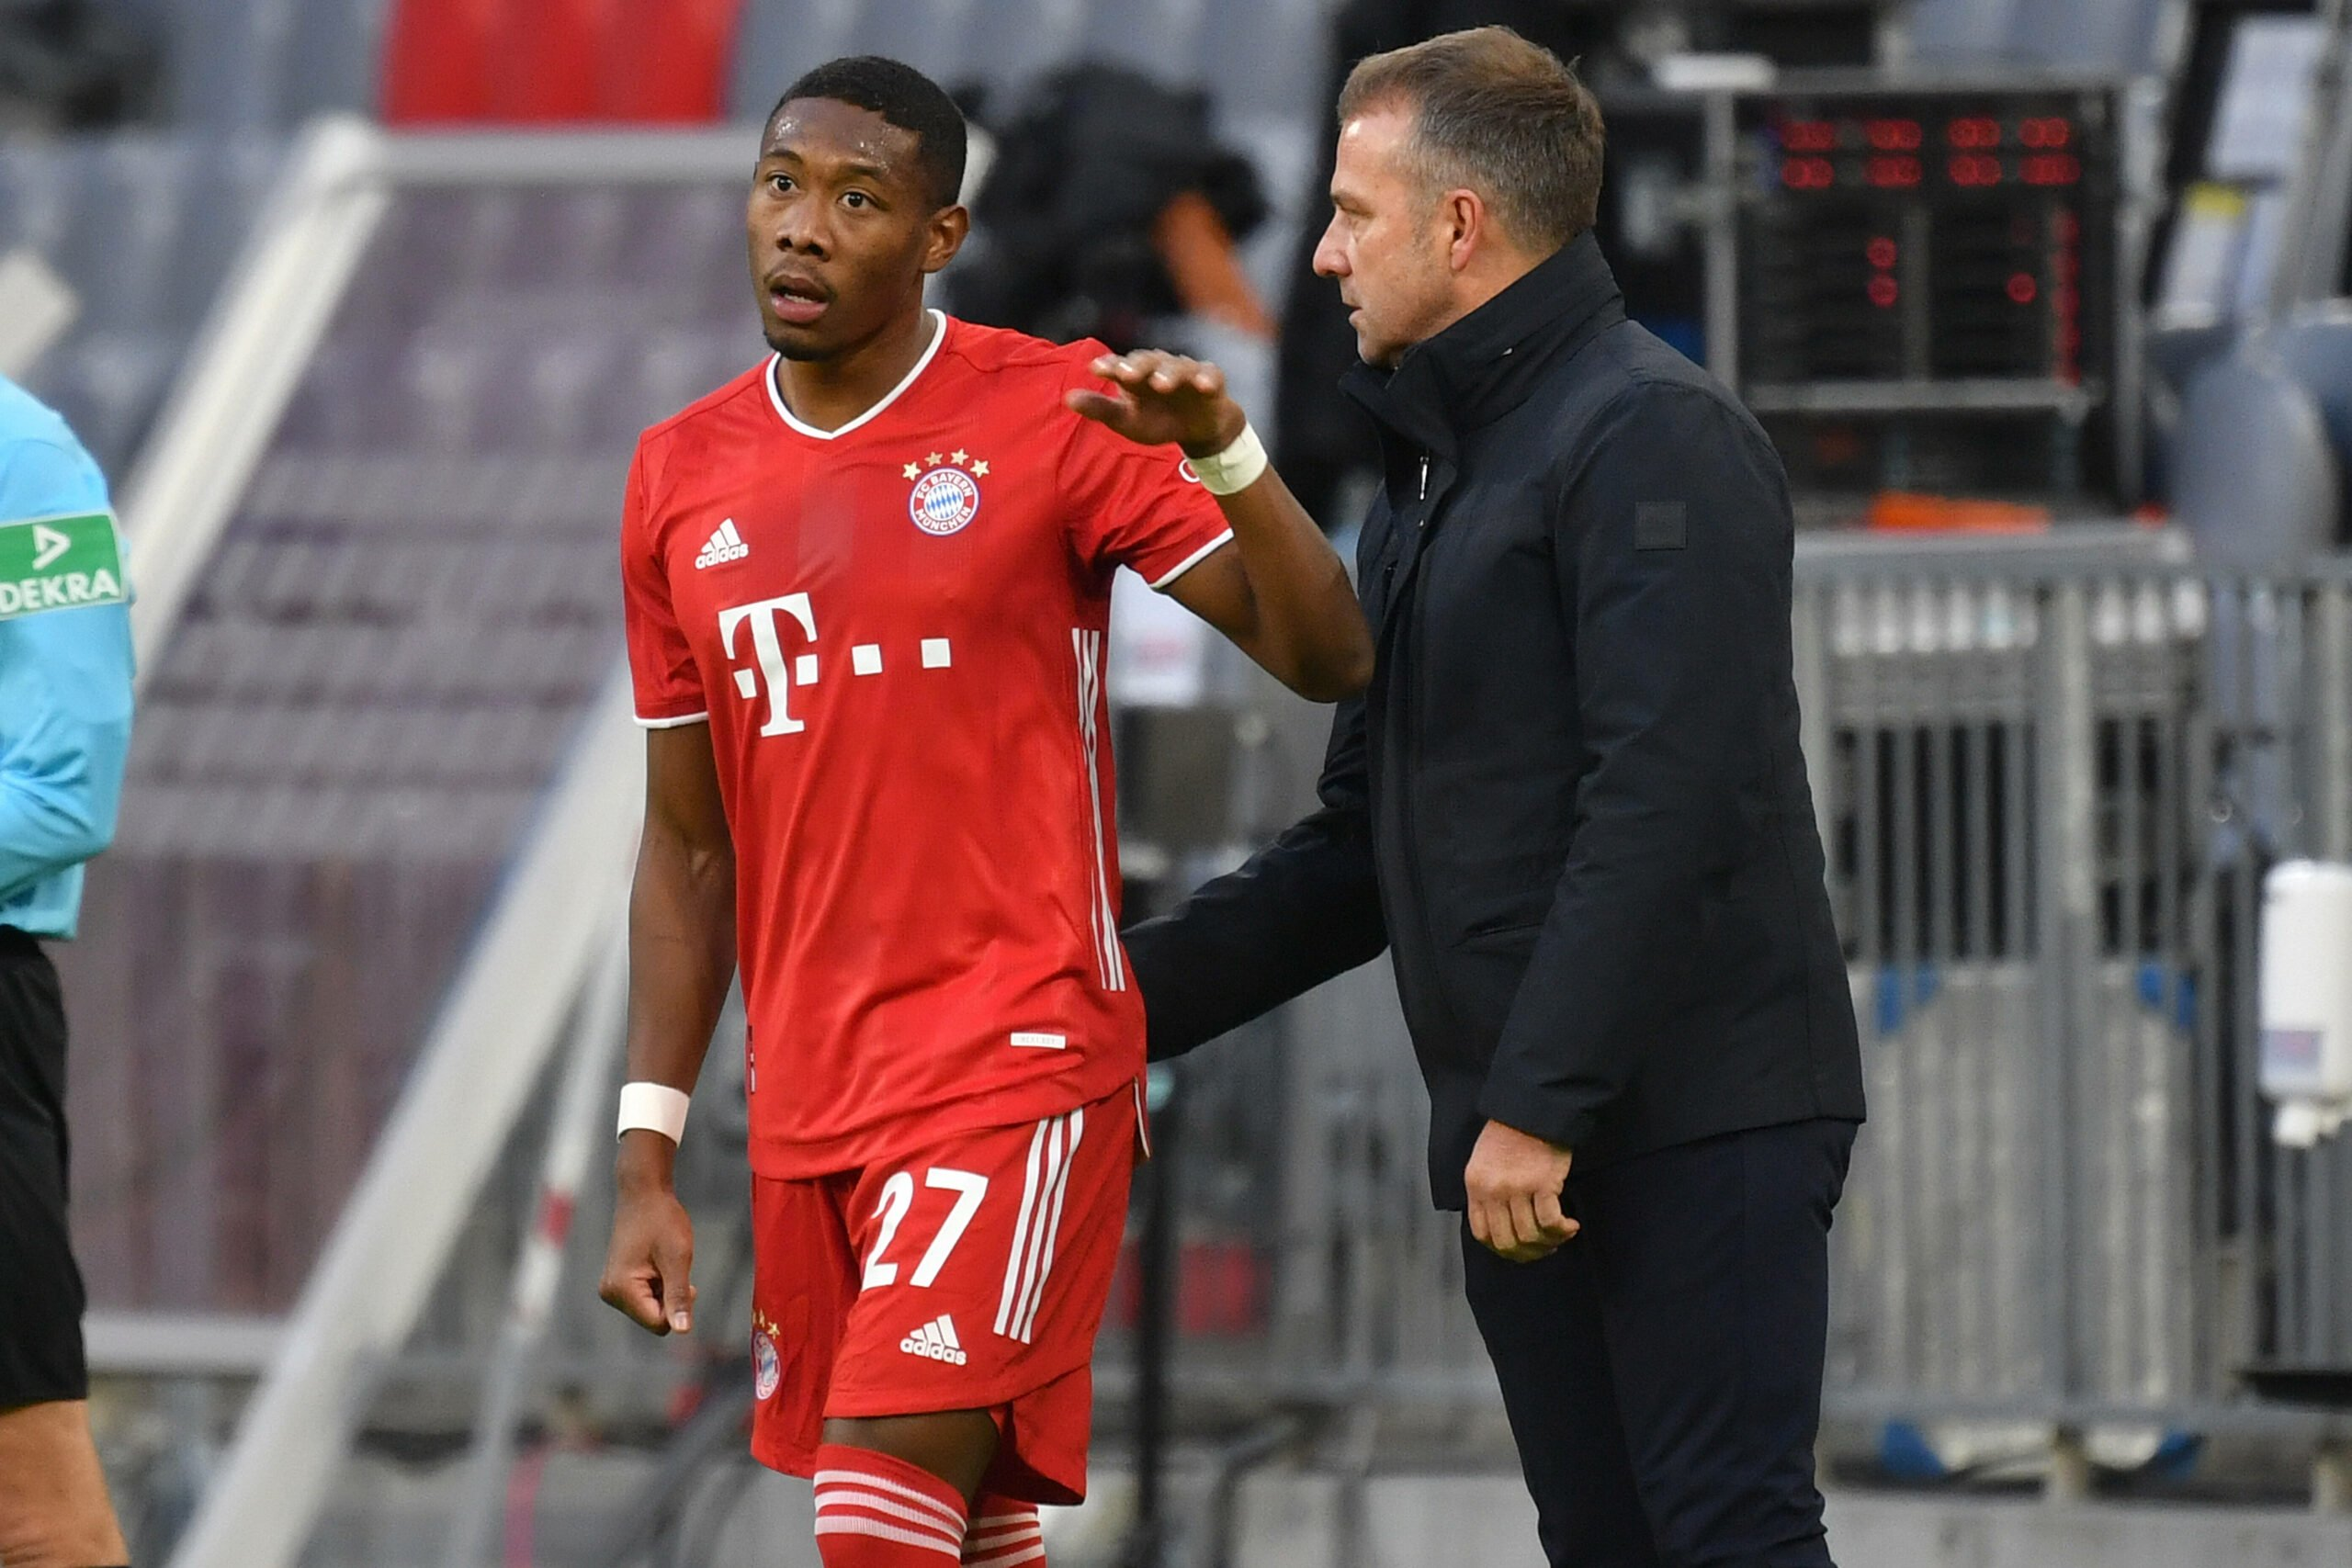 Hansi Flick und David Alaba